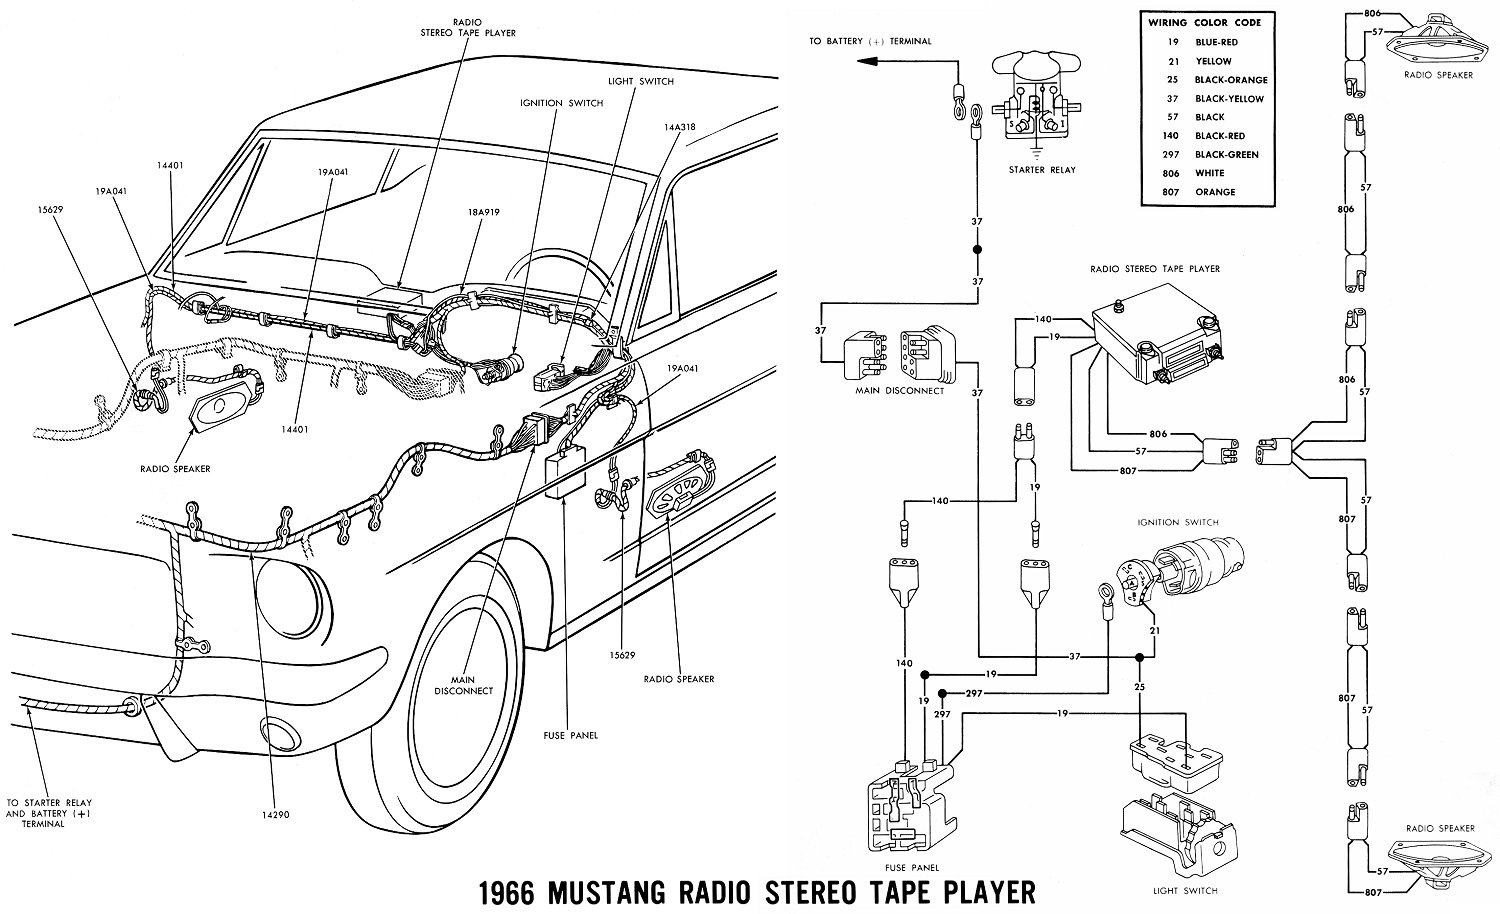 66 accessories schematic � 66 stereo/tape player details